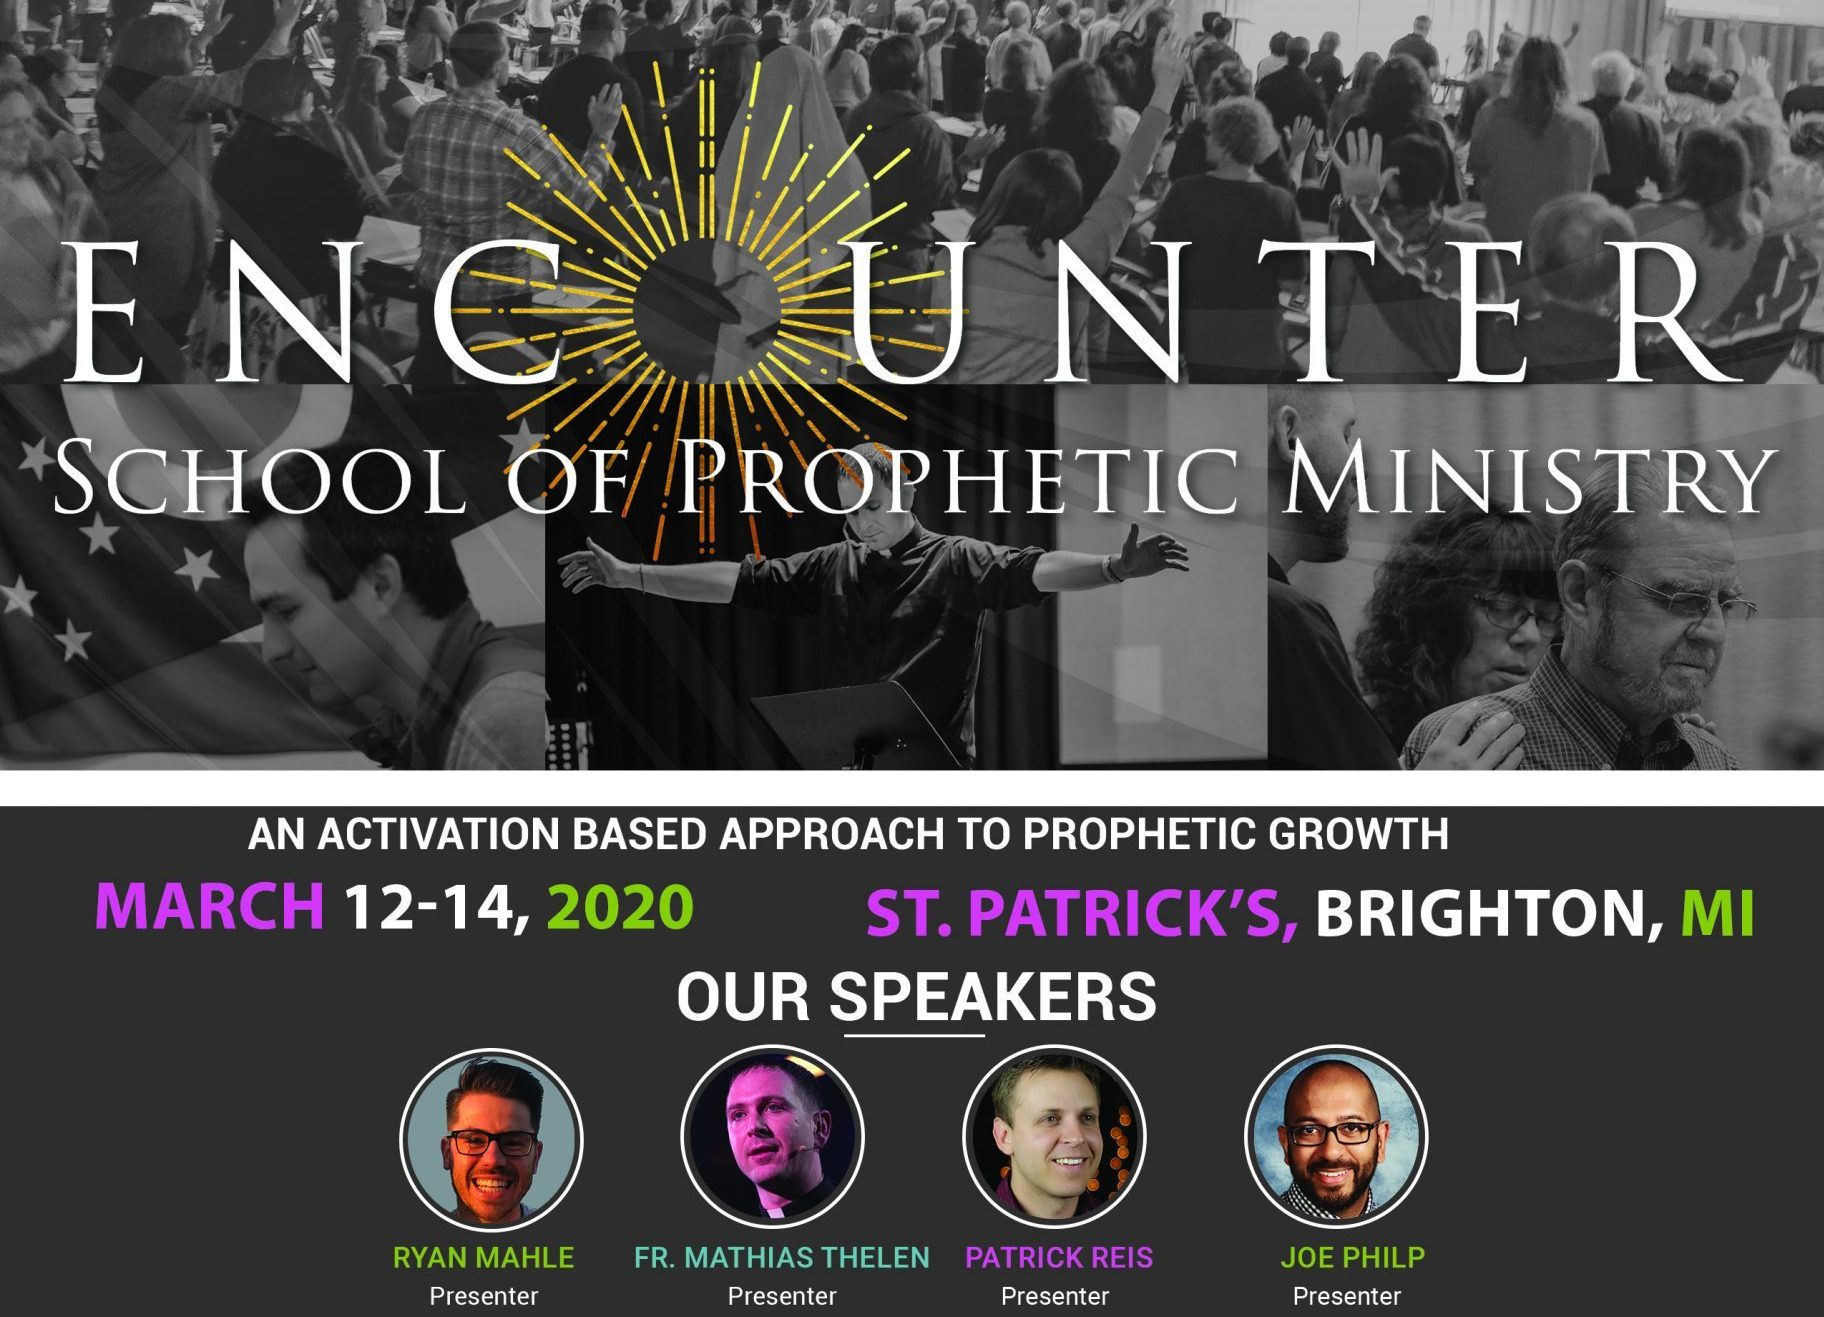 School of Prophetic Ministry - Brighton 2020